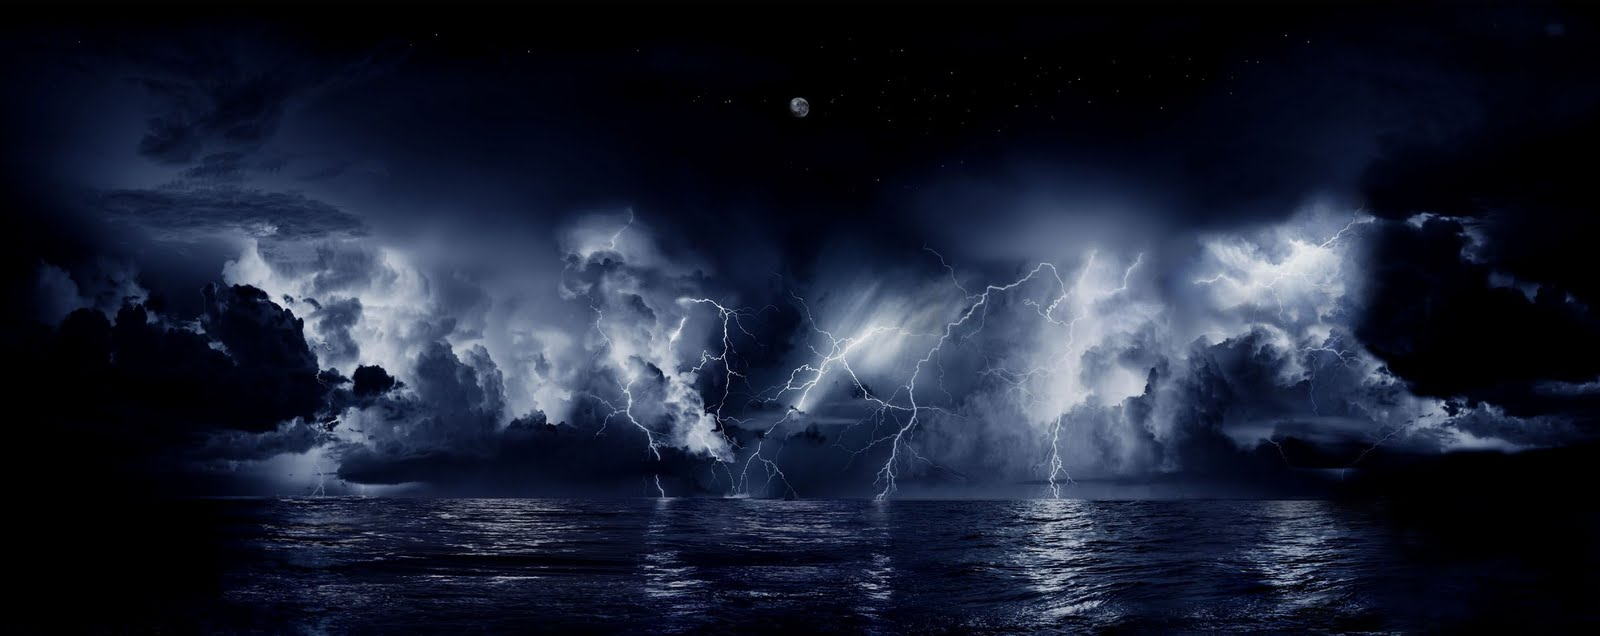 a204af1b7d33 Five lightning strikes at once aren t uncommon here.  Image credit   Worlds9thwonder via Wikimedia Commons